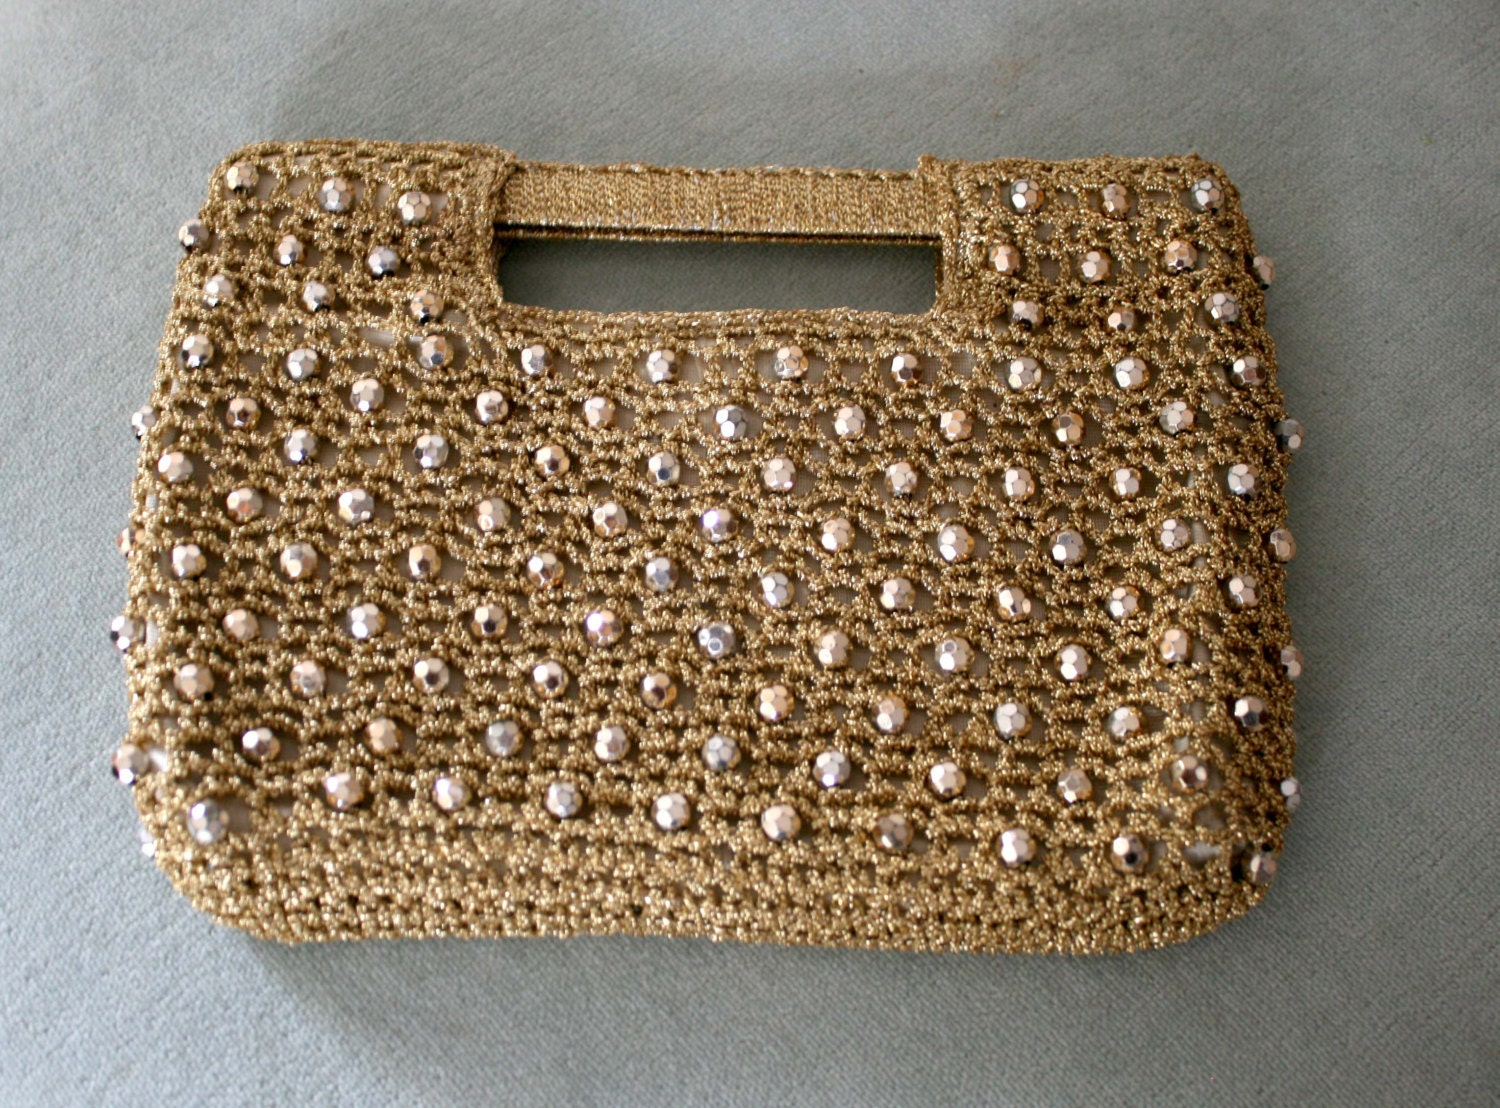 Crochet Clutch Purse Vintage Italy 1950s 1960s by MarinasCloud